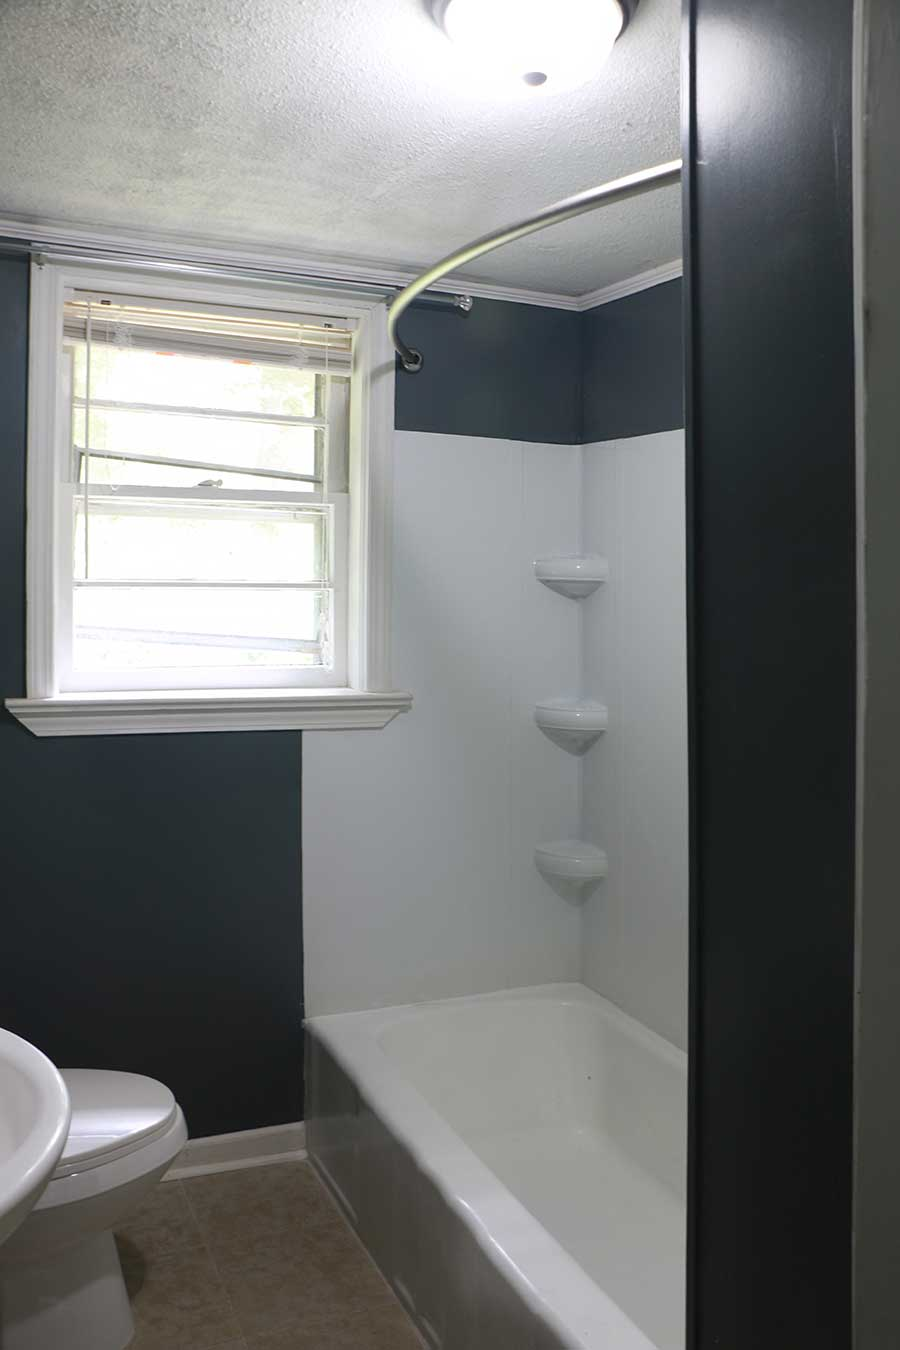 Shower bathtub with window